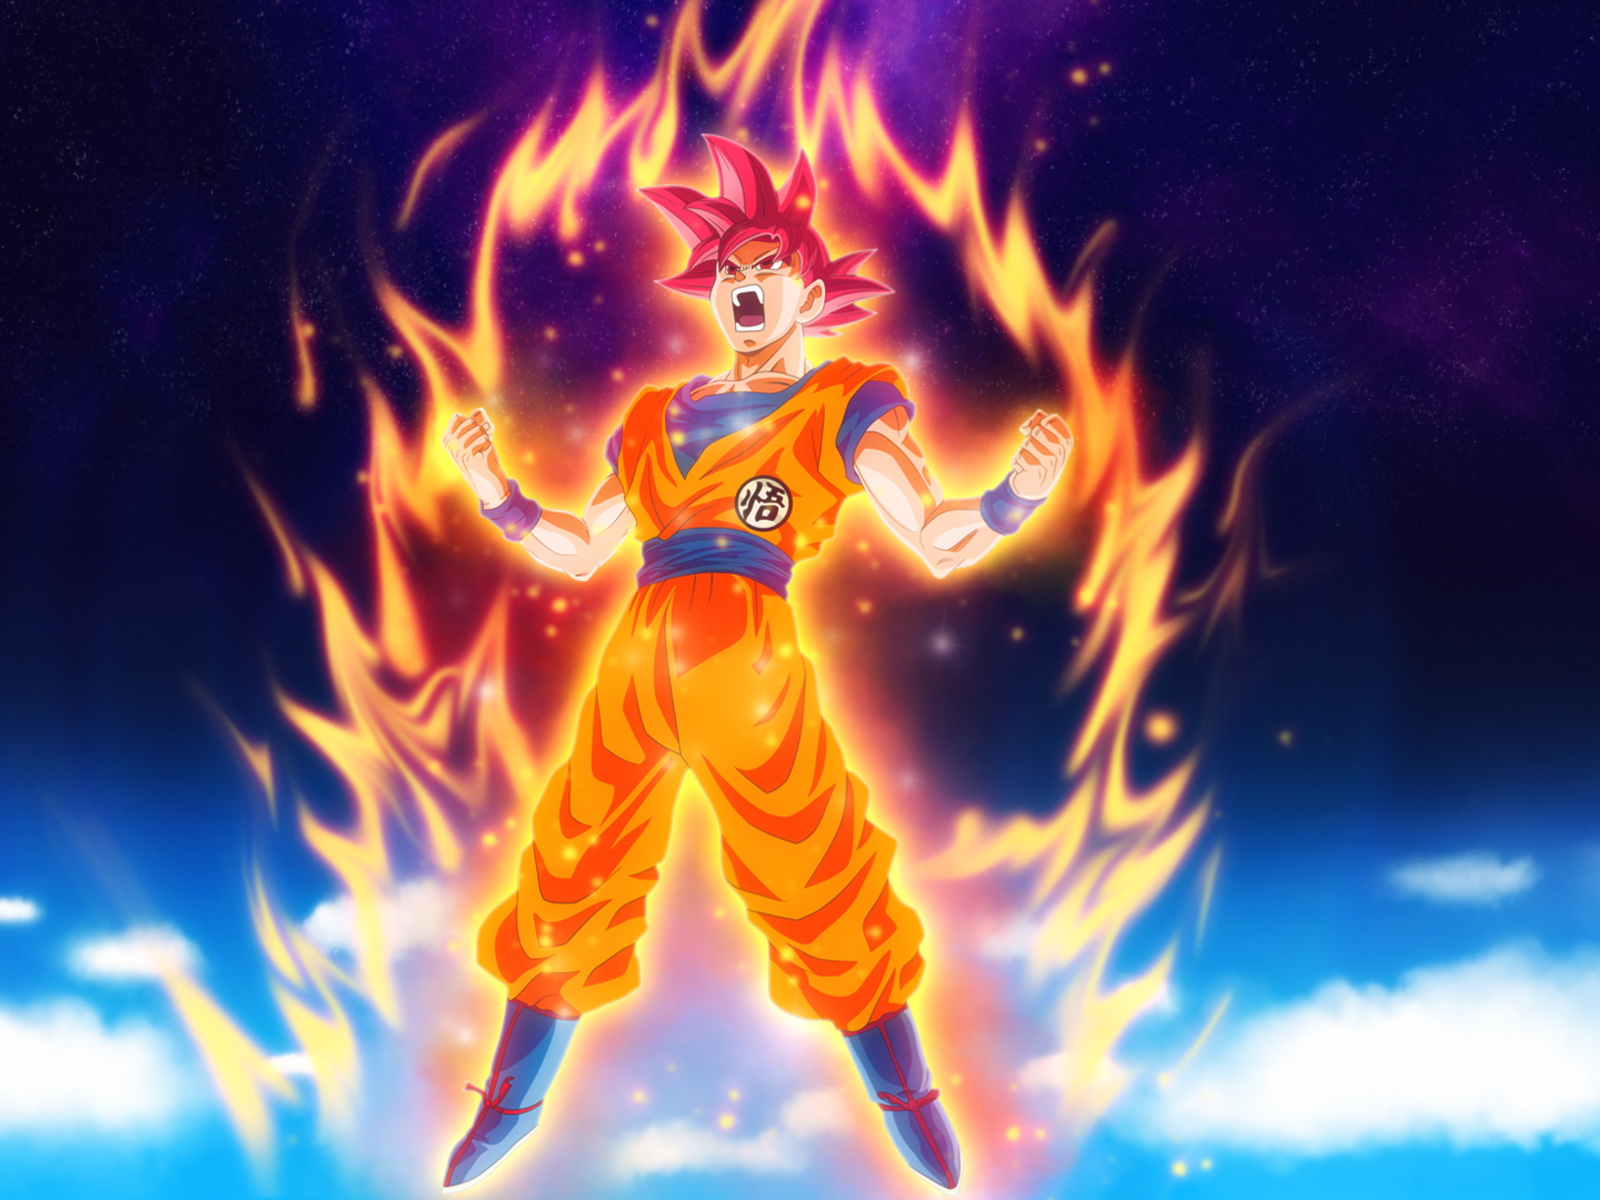 1600x1200 goku dragon ball super anime hd 1600x1200 resolution hd 4k